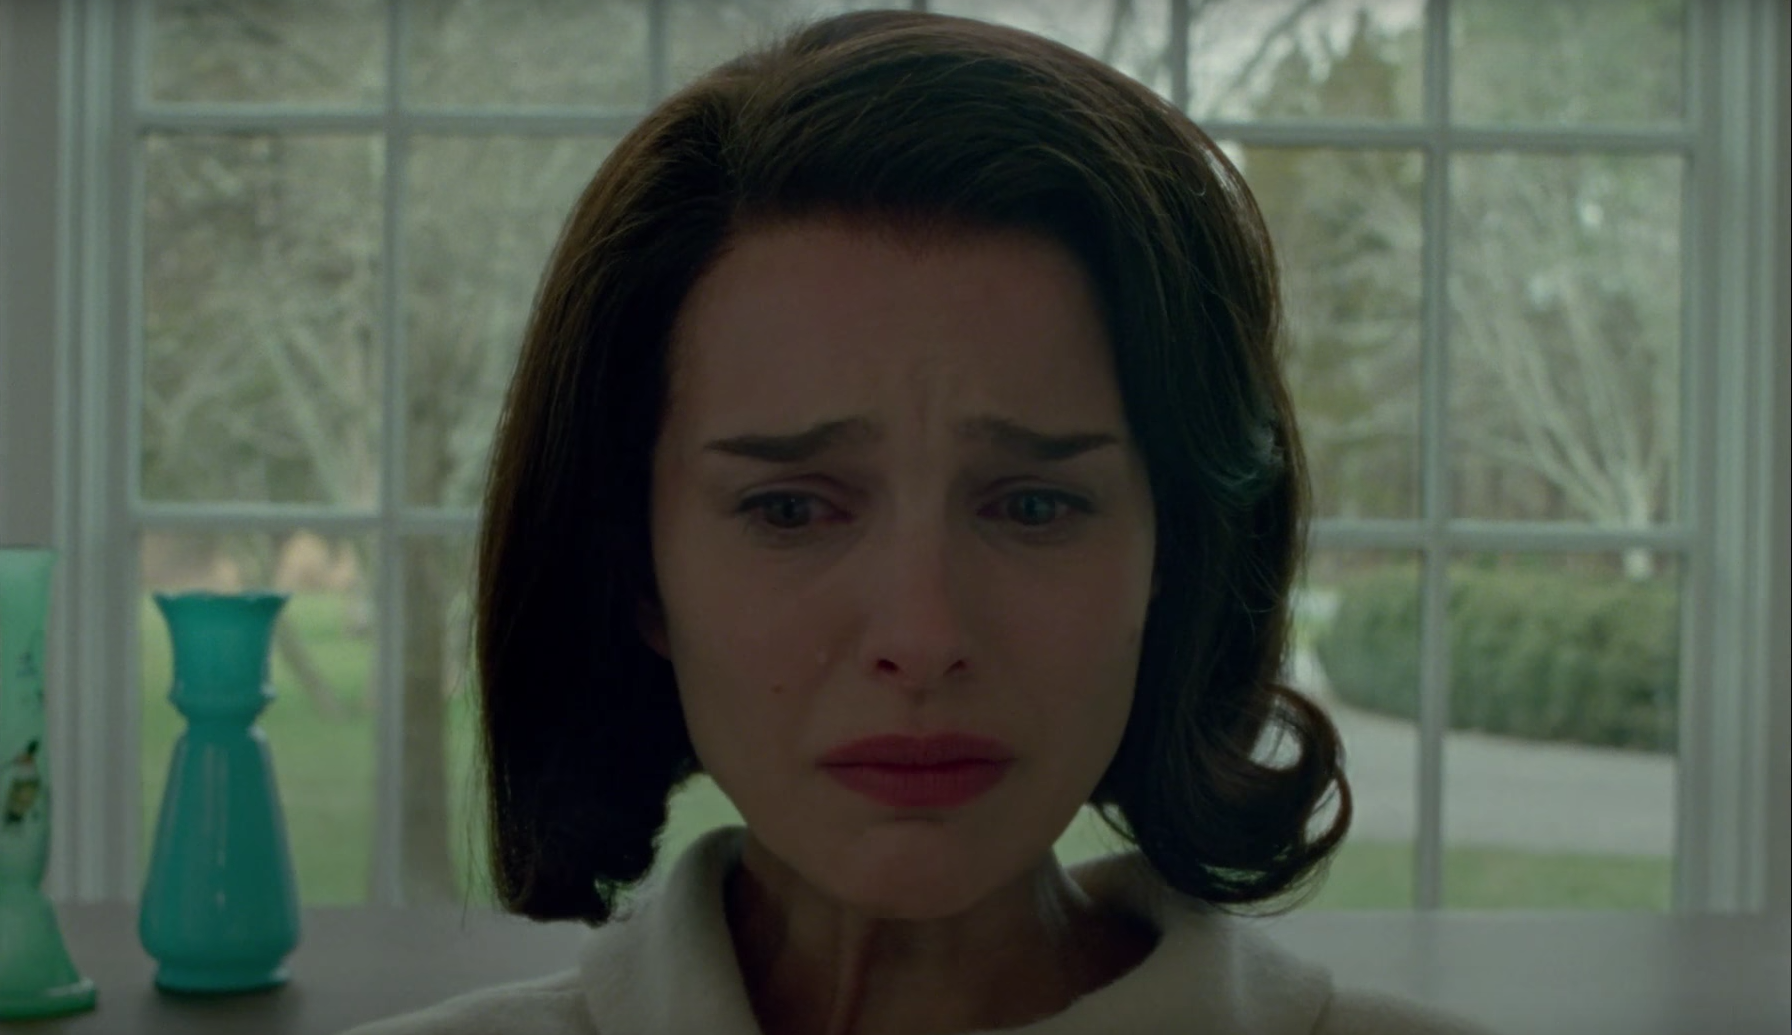 Natalie Portman is breathtaking in the new trailer for 'Jackie'